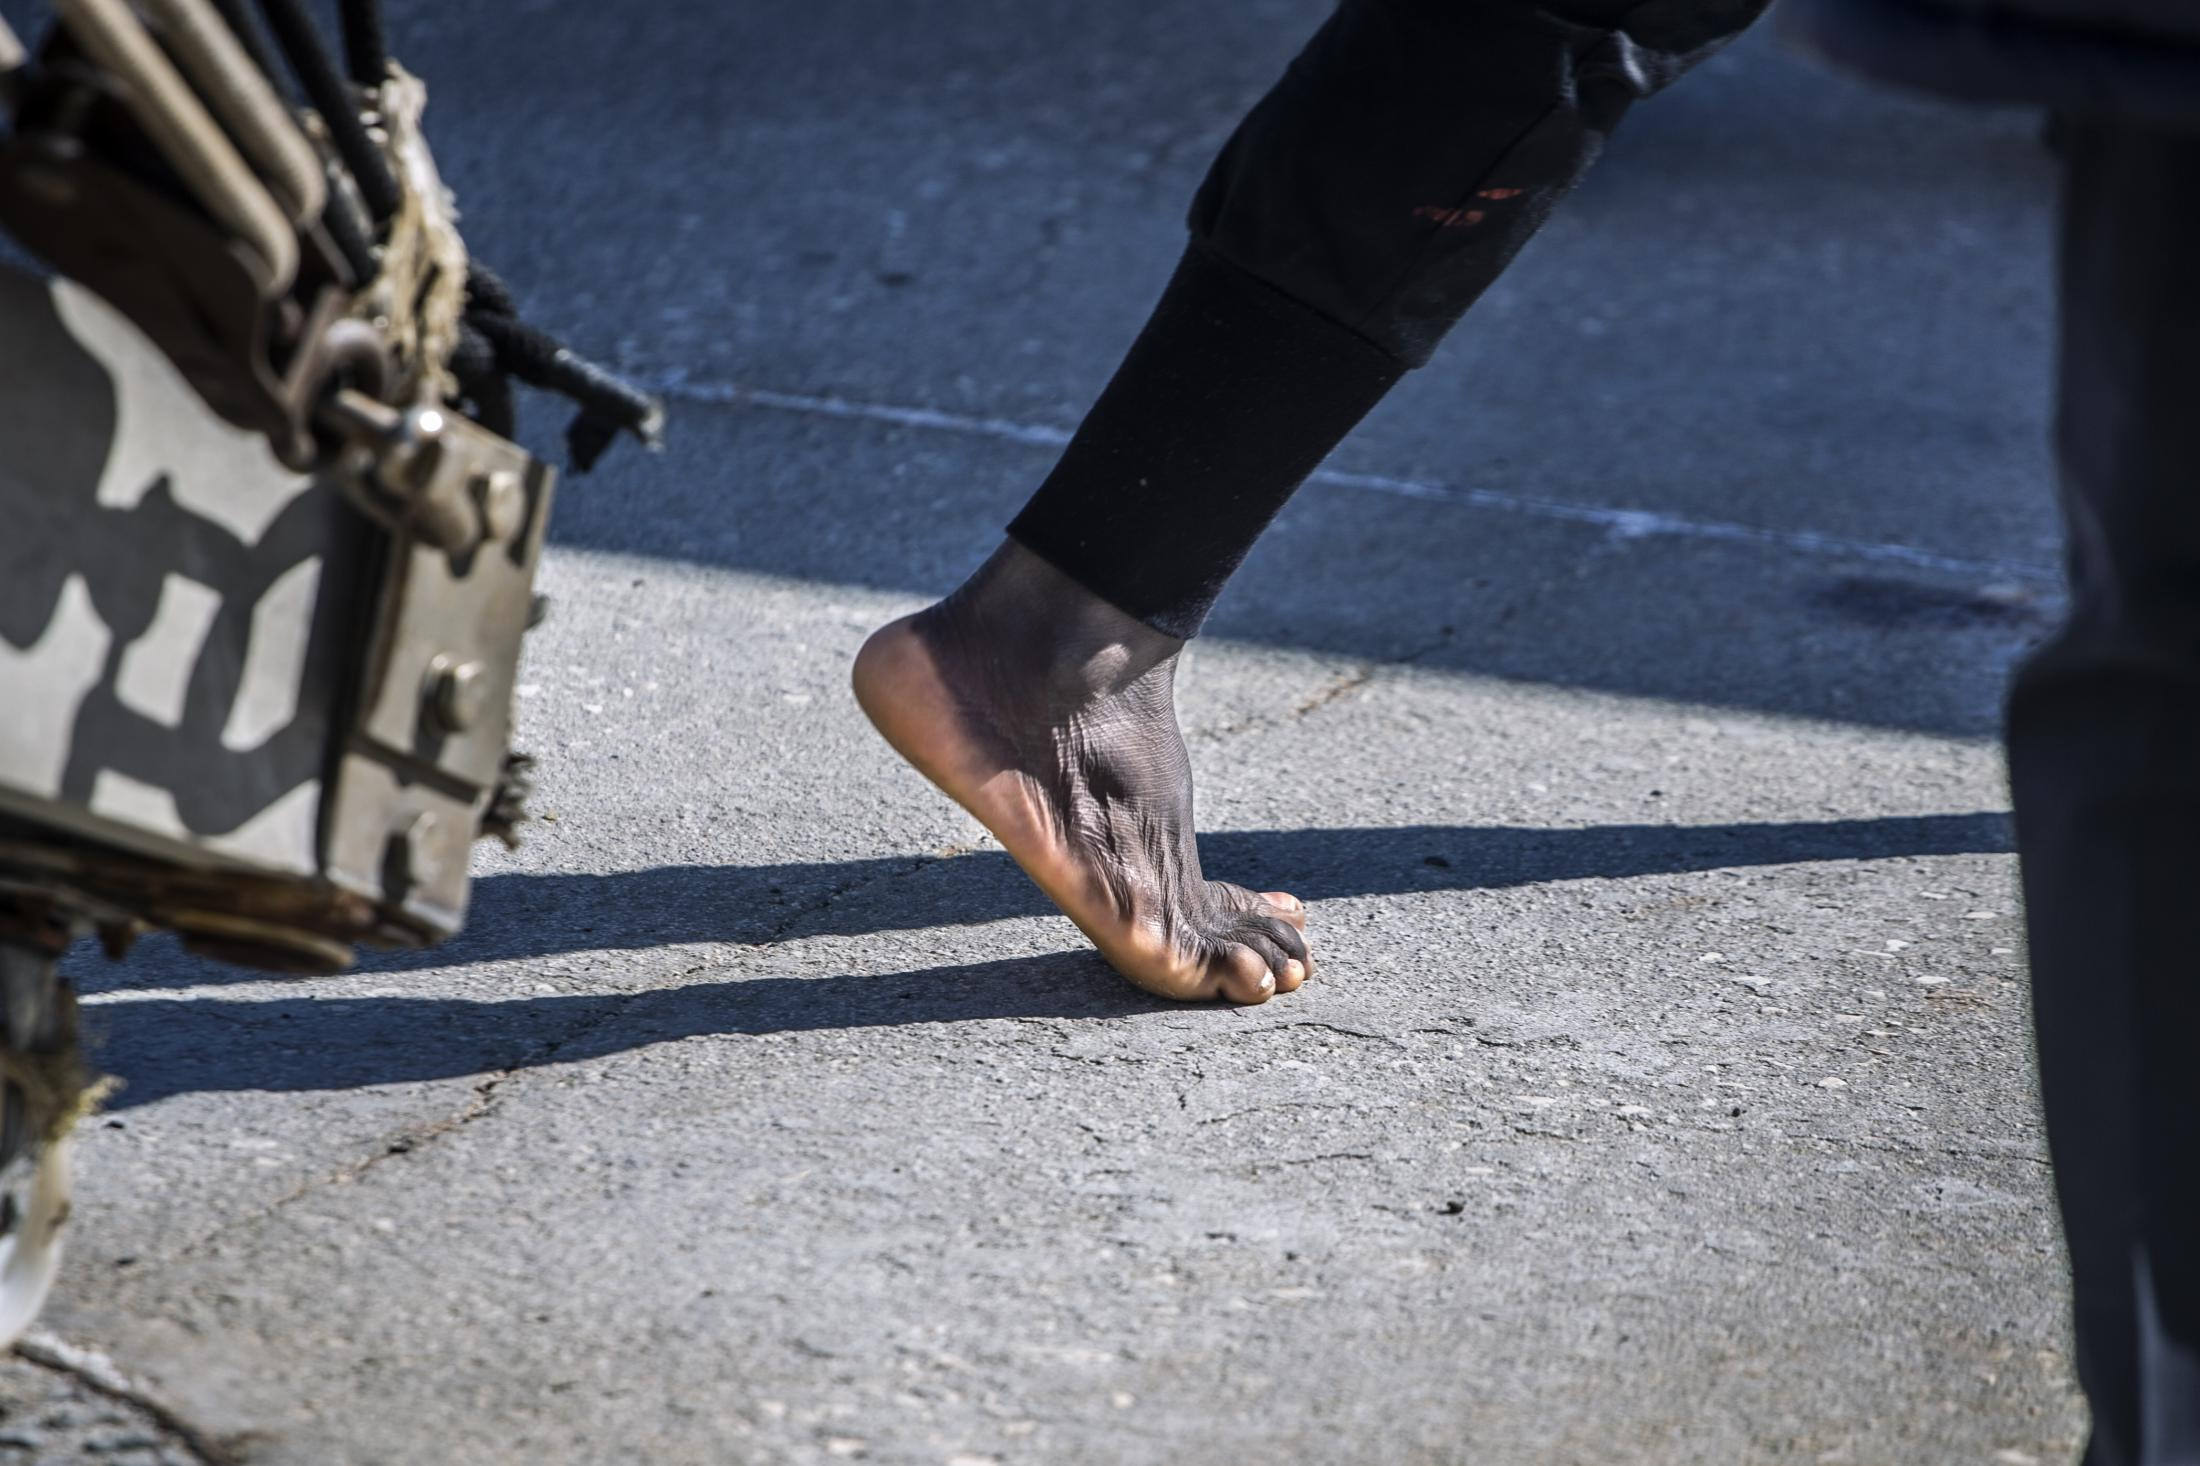 A migrant steps on the ground barefoot in the Italian port of Empedocles after being rescued by the Spanish NGO Open Arms in the Central Mediterranean Sea, Tuesday, Feb 16, 2021